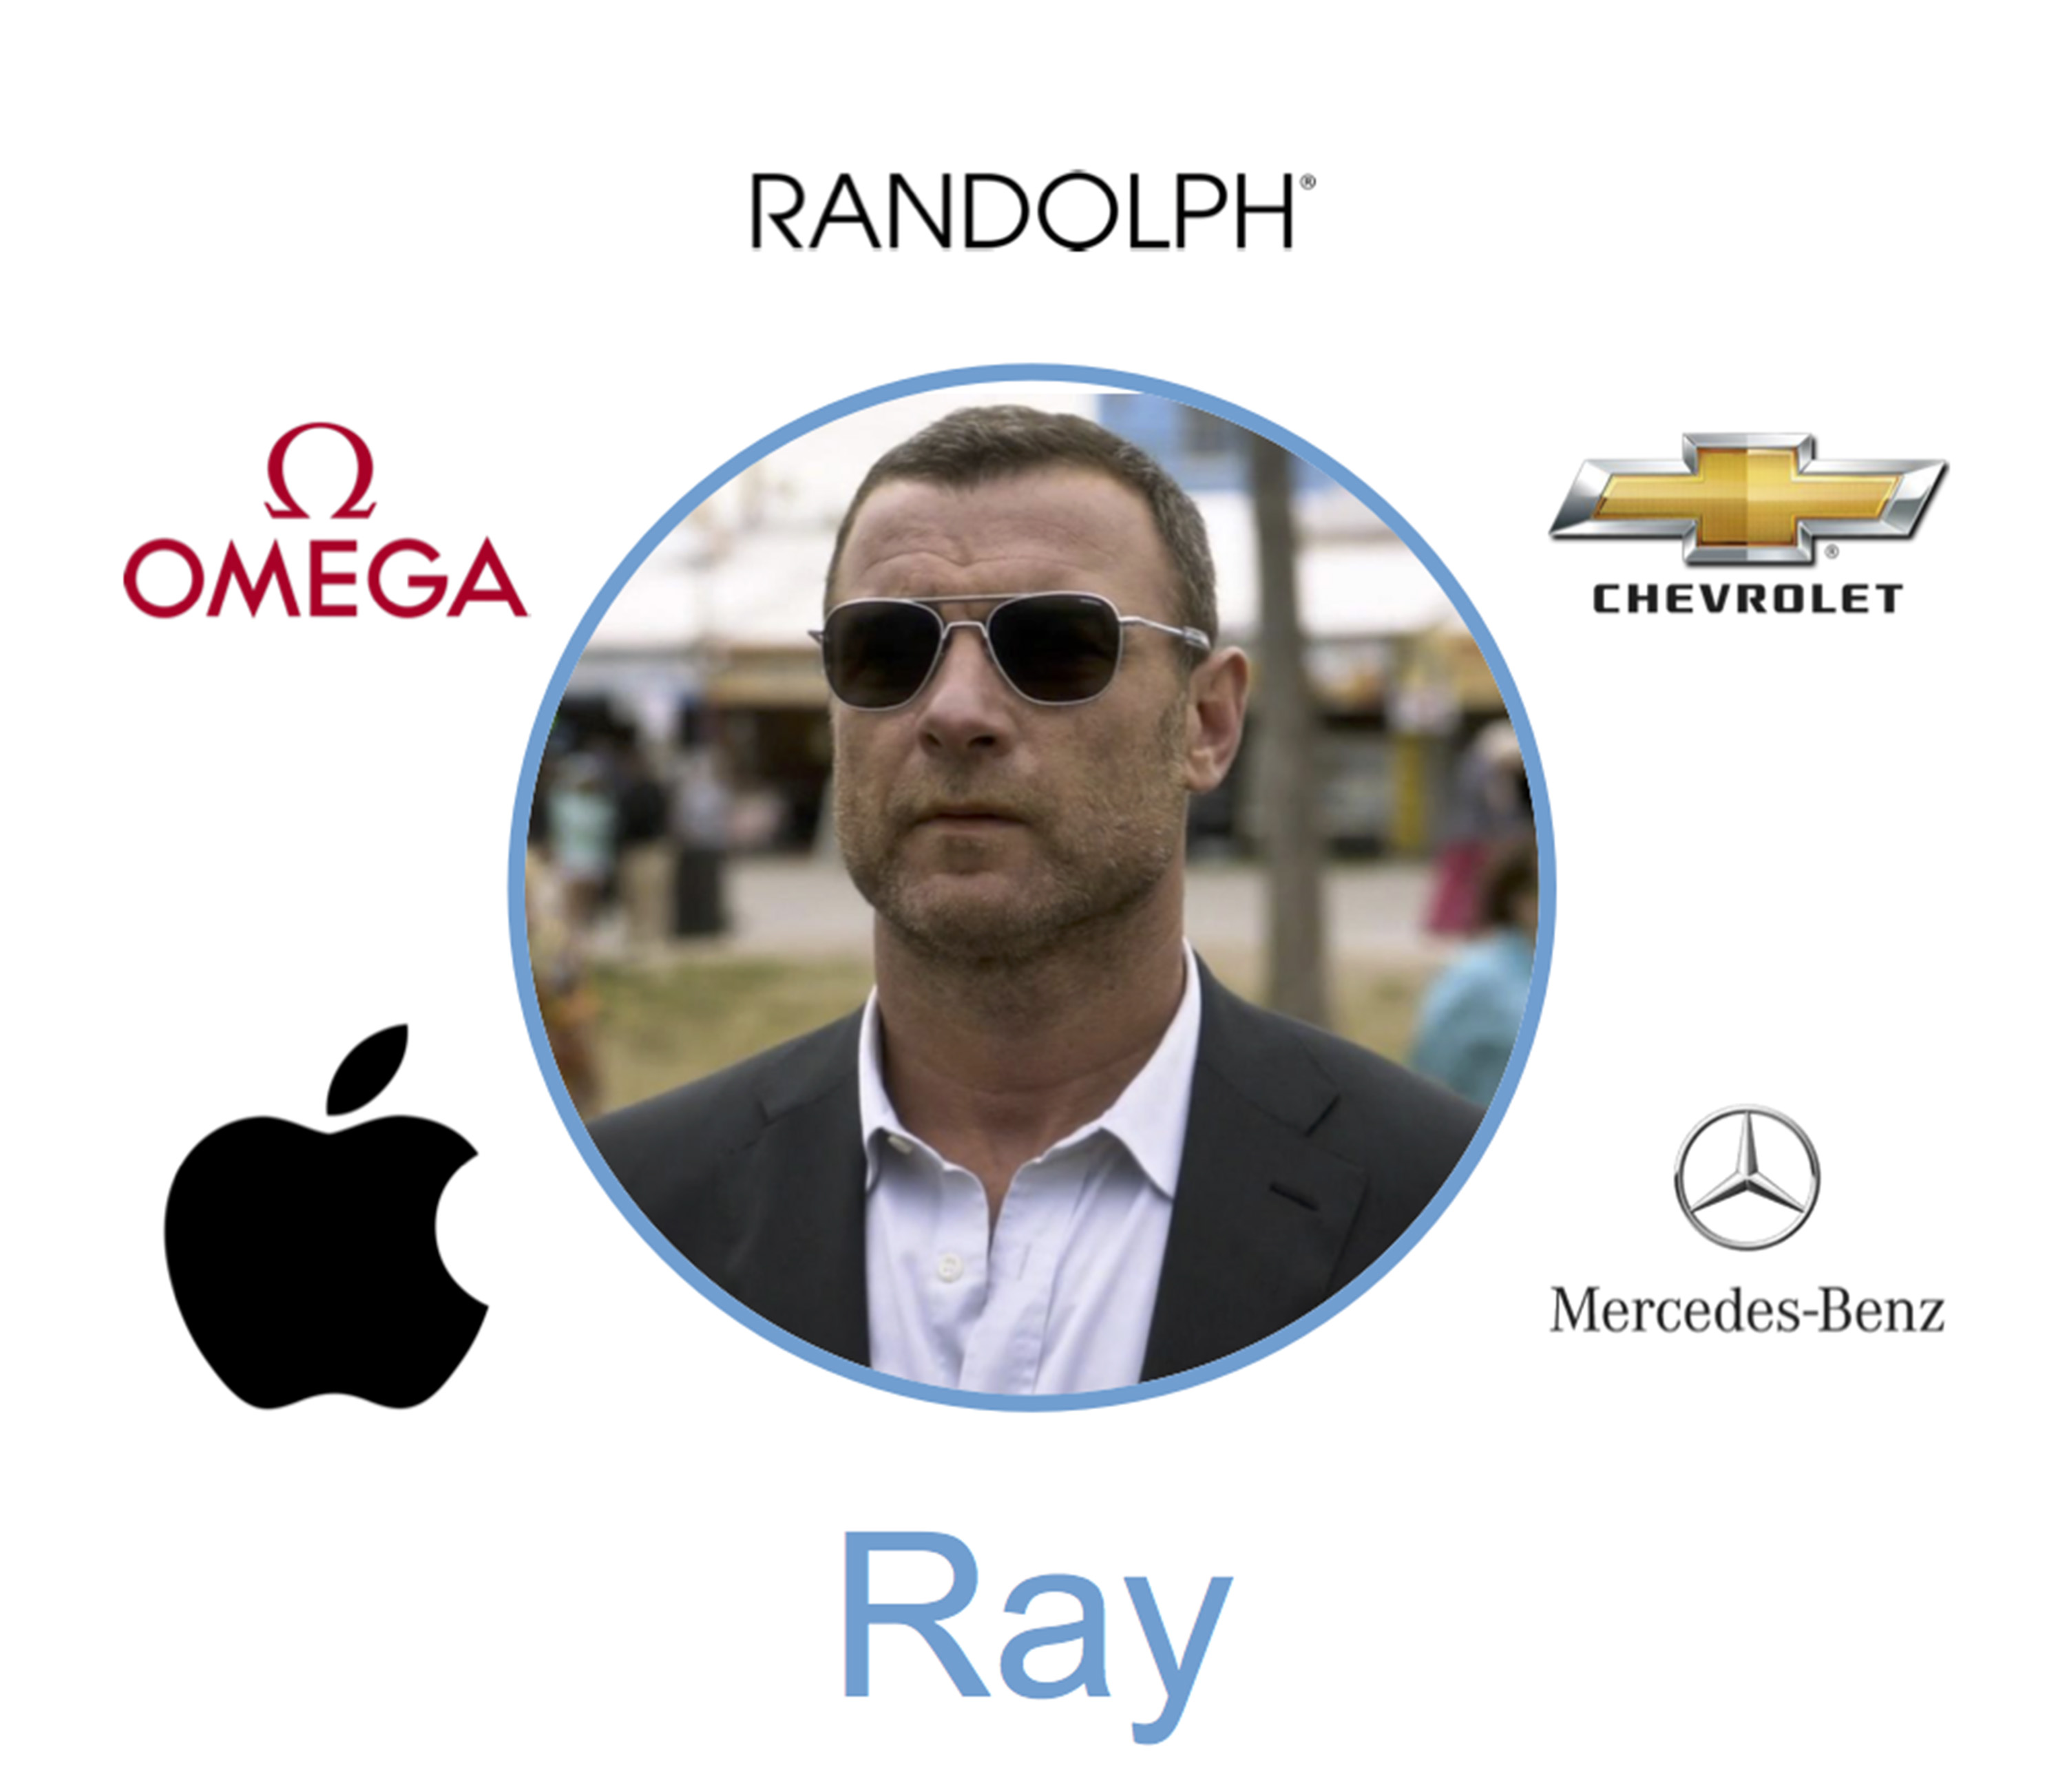 brands product placment ray donovan season 4 ray donovan randolph engineering chevrolet omega mercedes benz apple